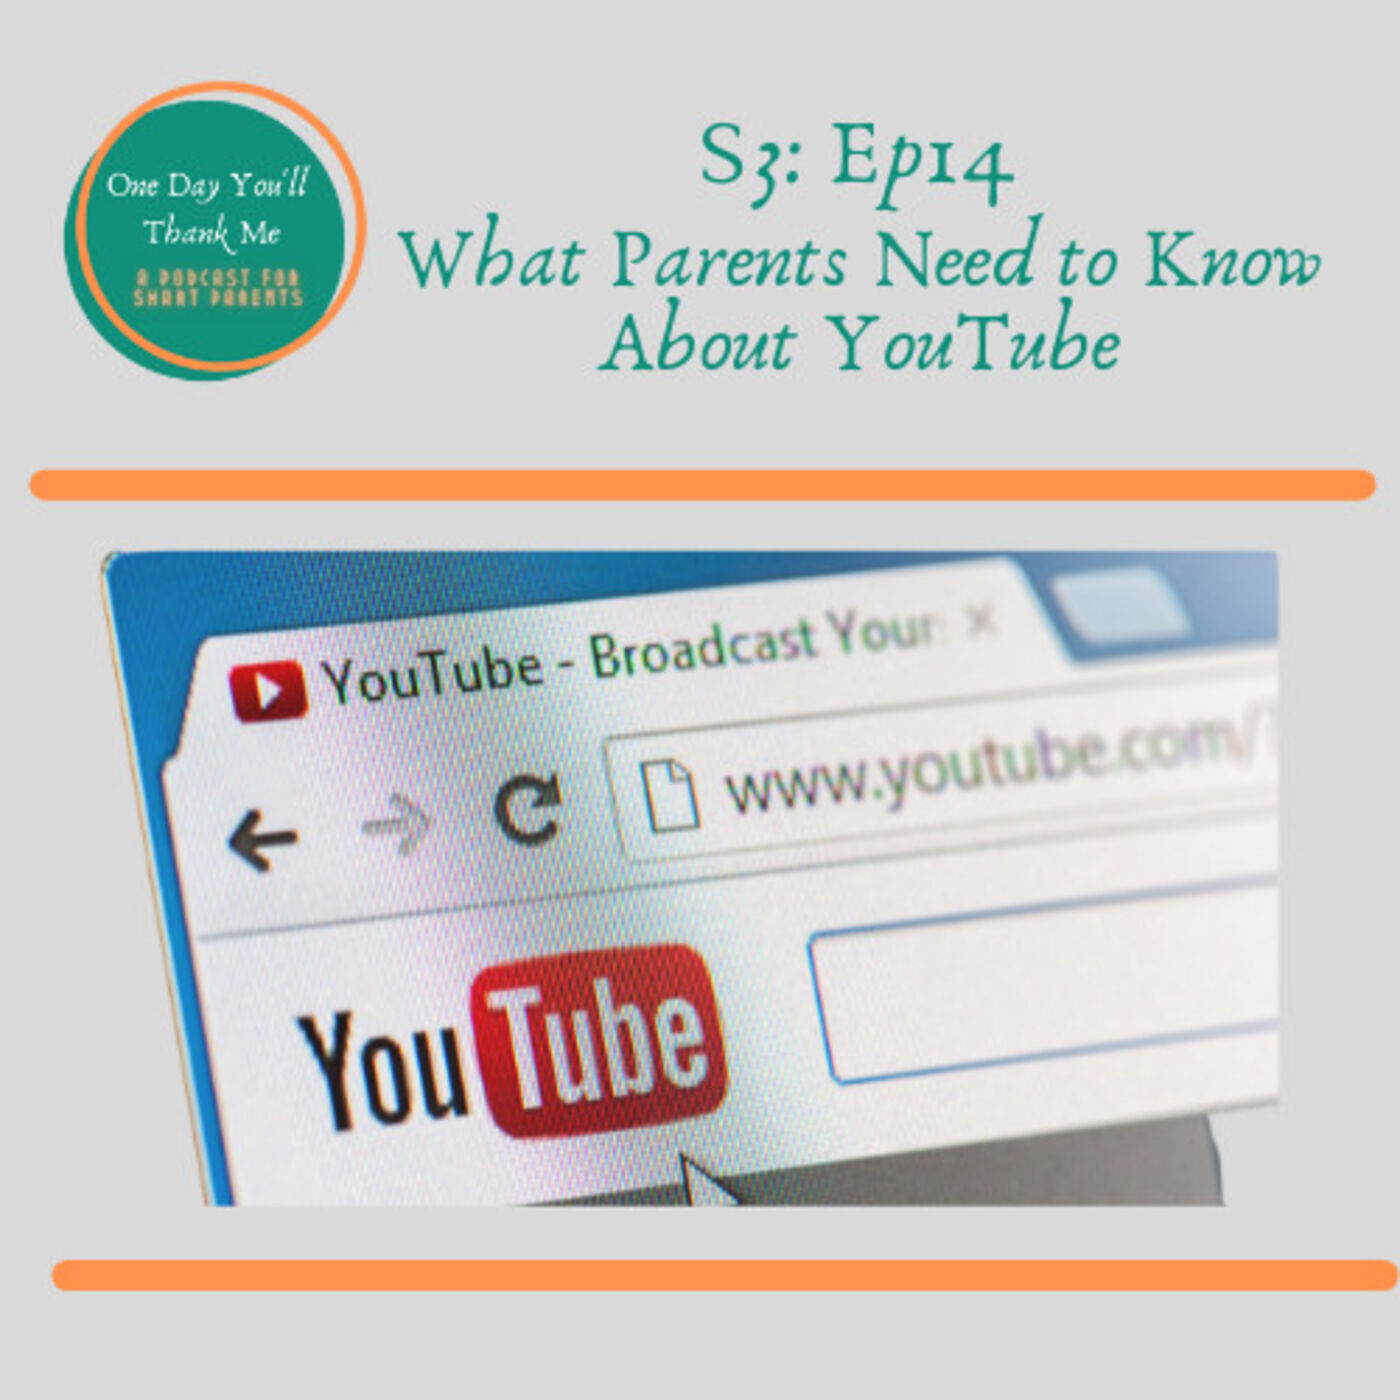 S3: E14 What Parents Need to Know About YouTube